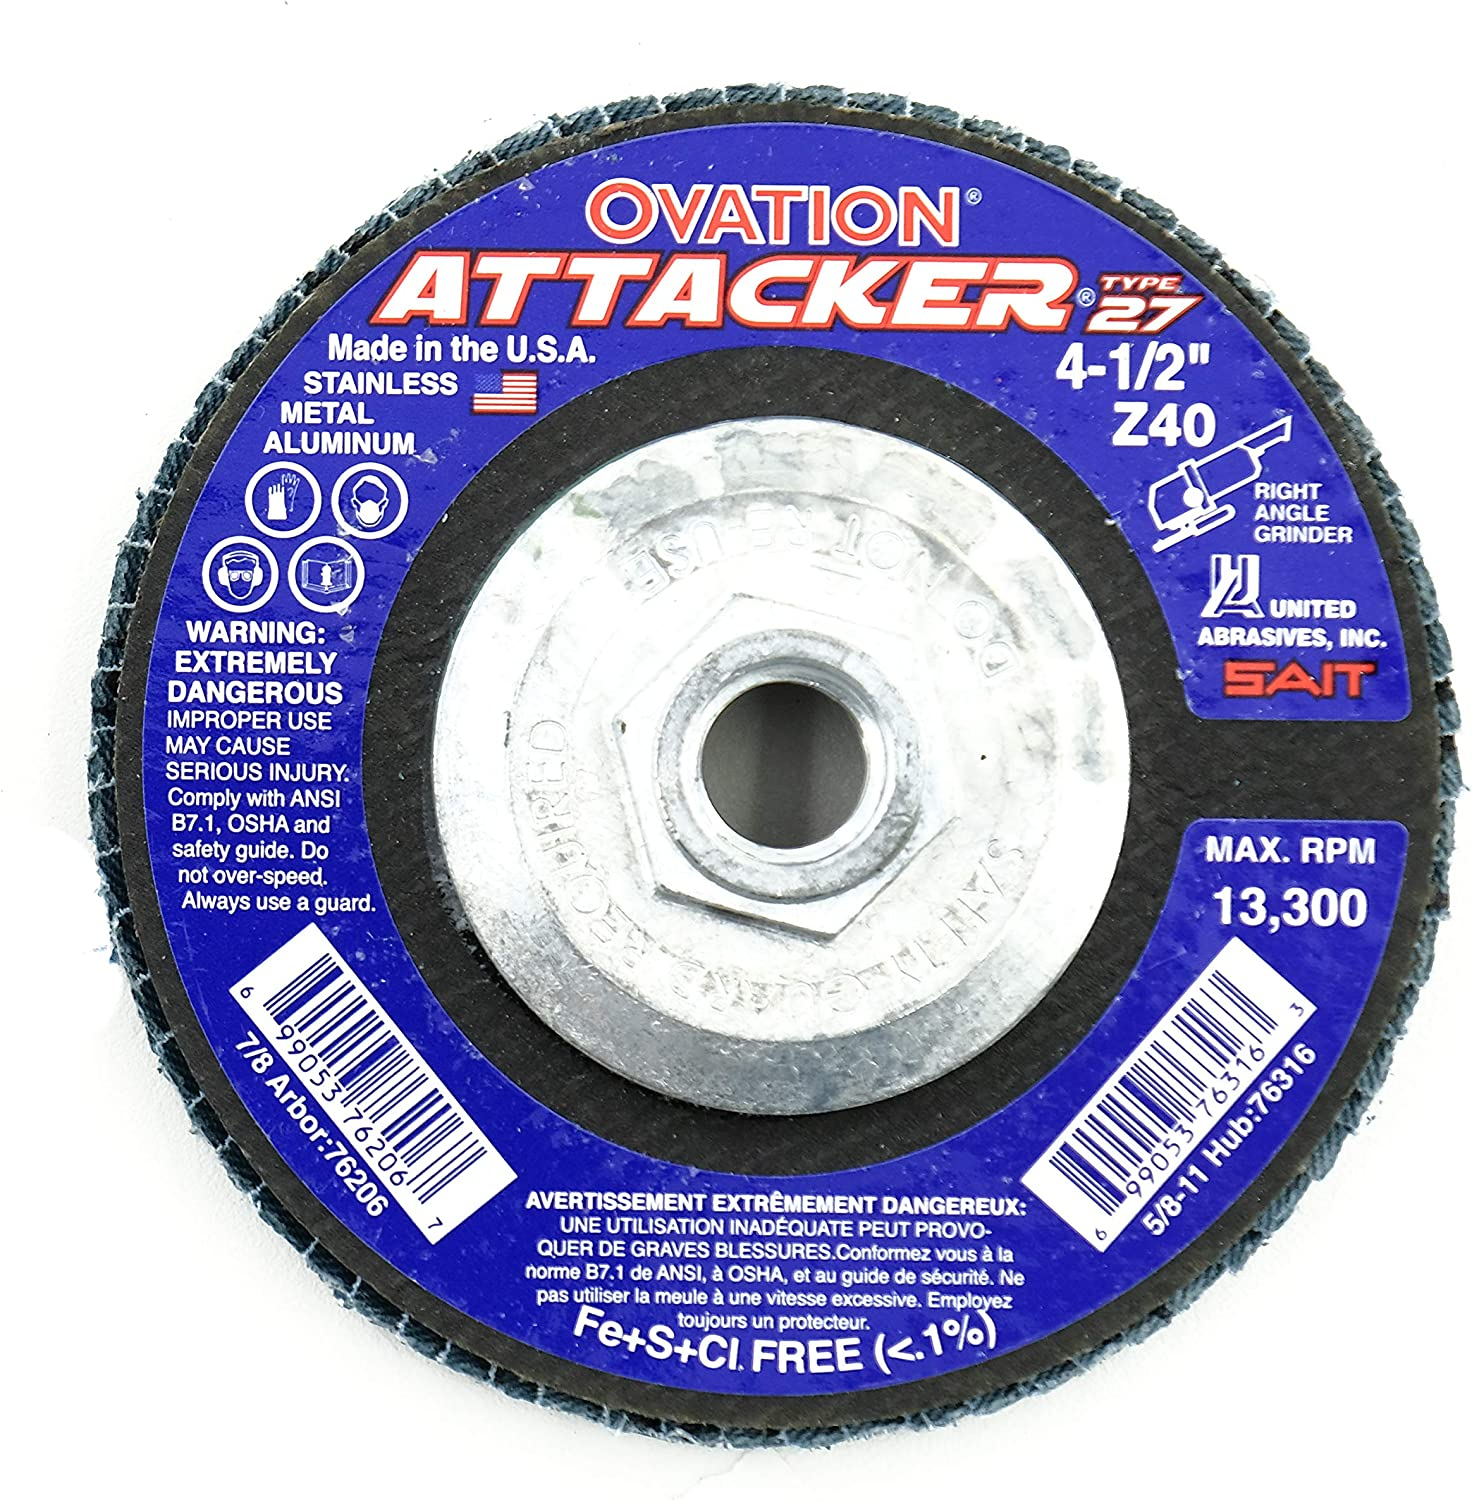 United Abrasives-SAIT 76206 Ovation Attacker Flap Disc, 4-1/2-Inch x 7/8-Inch 40 Grit, 10-Pack 91ZPVcaLAWLSL1500_